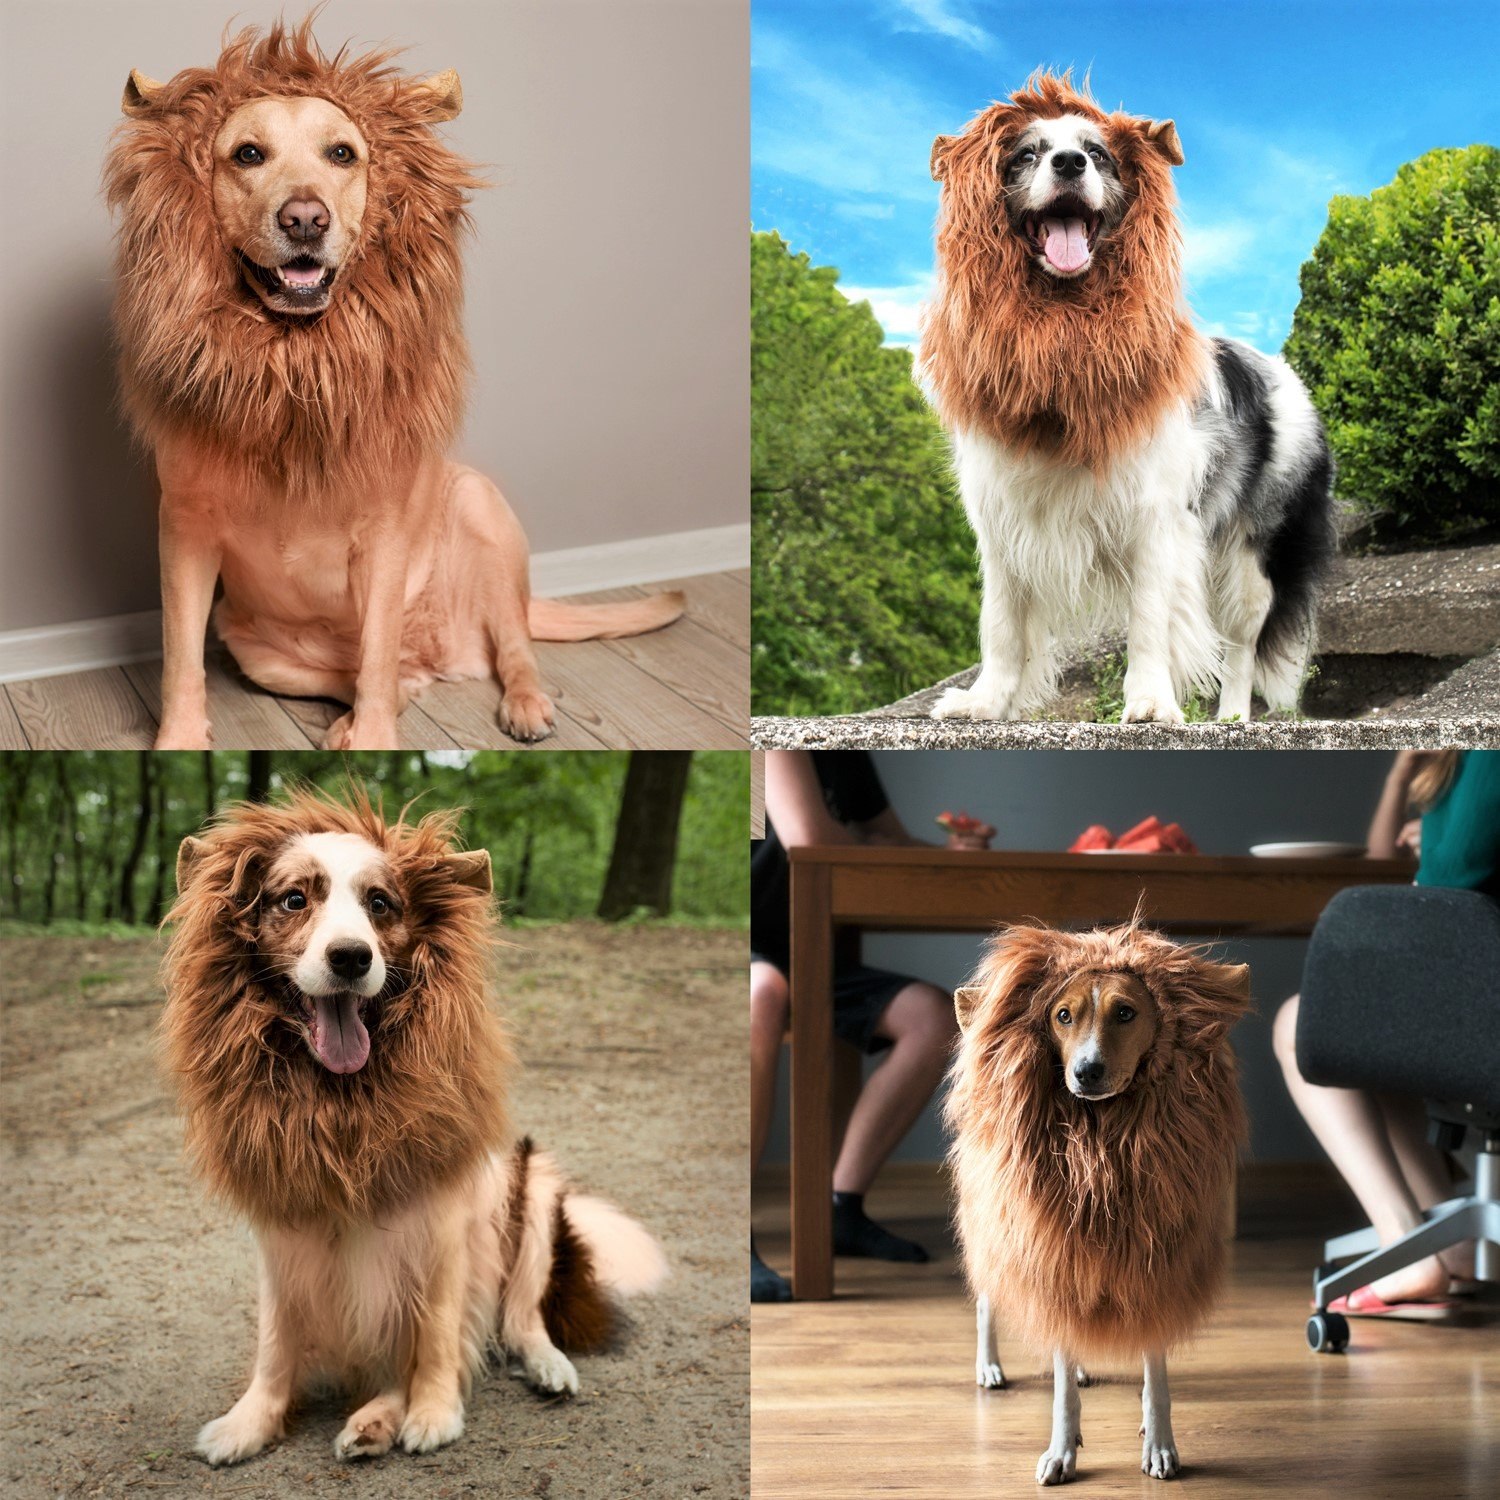 Lion Mane for Dog with Frisbee - Premium Quality, Realistic, Hilarious & Eye Catching Dog Lion Mane - Dog Costume with Ears - Comfortable Lion Wig for Medium and Large Dogs - Perfect Dog Gift by Joy4Pets (Image #7)